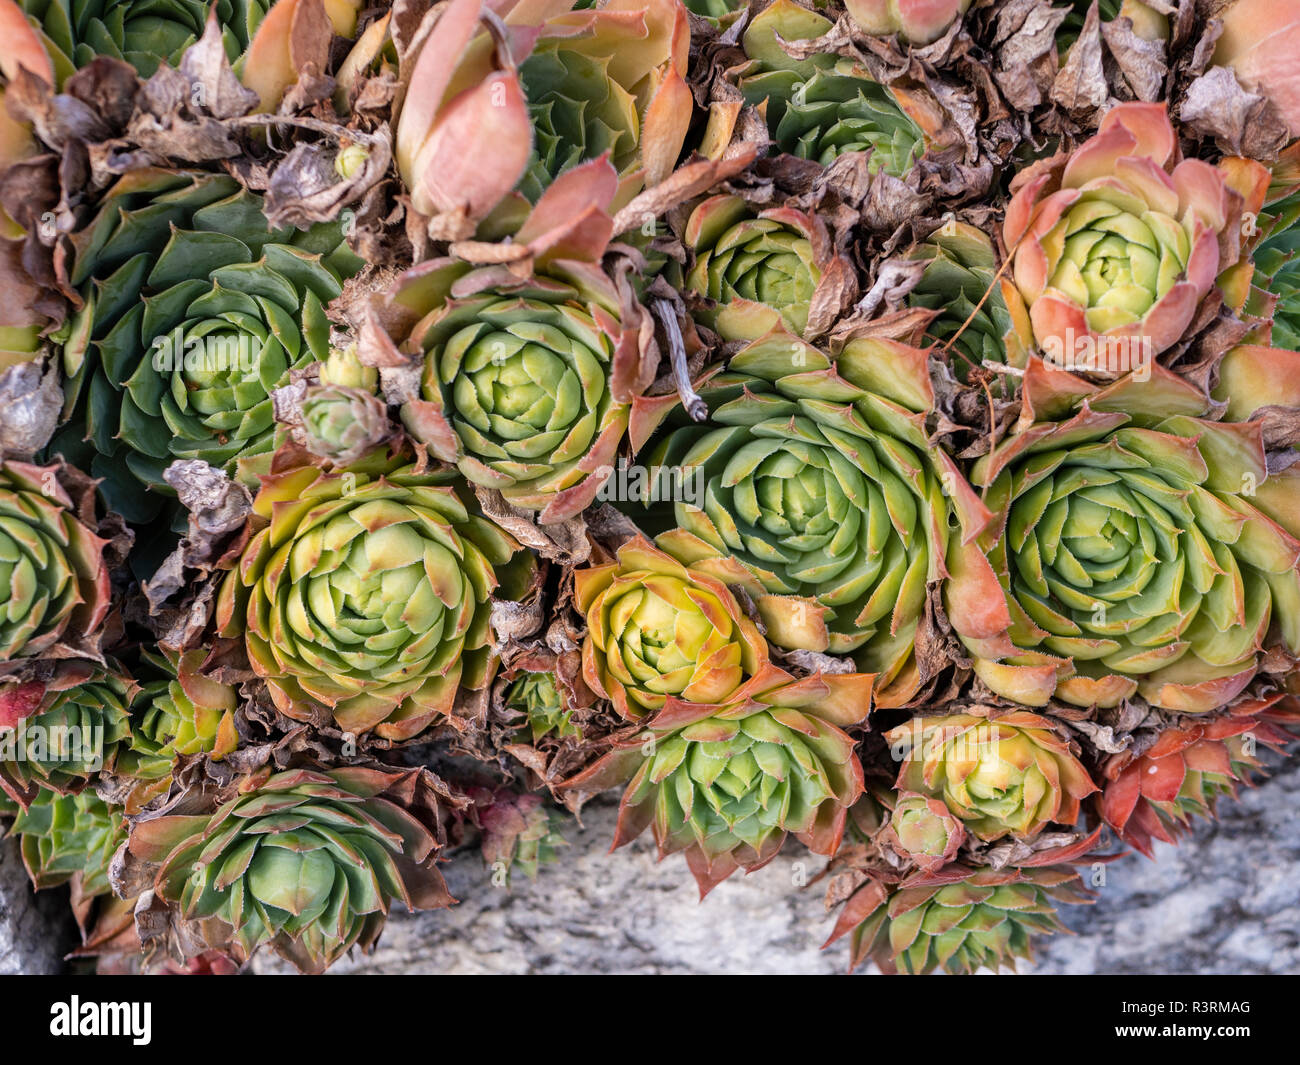 some green succulents - Stock Image